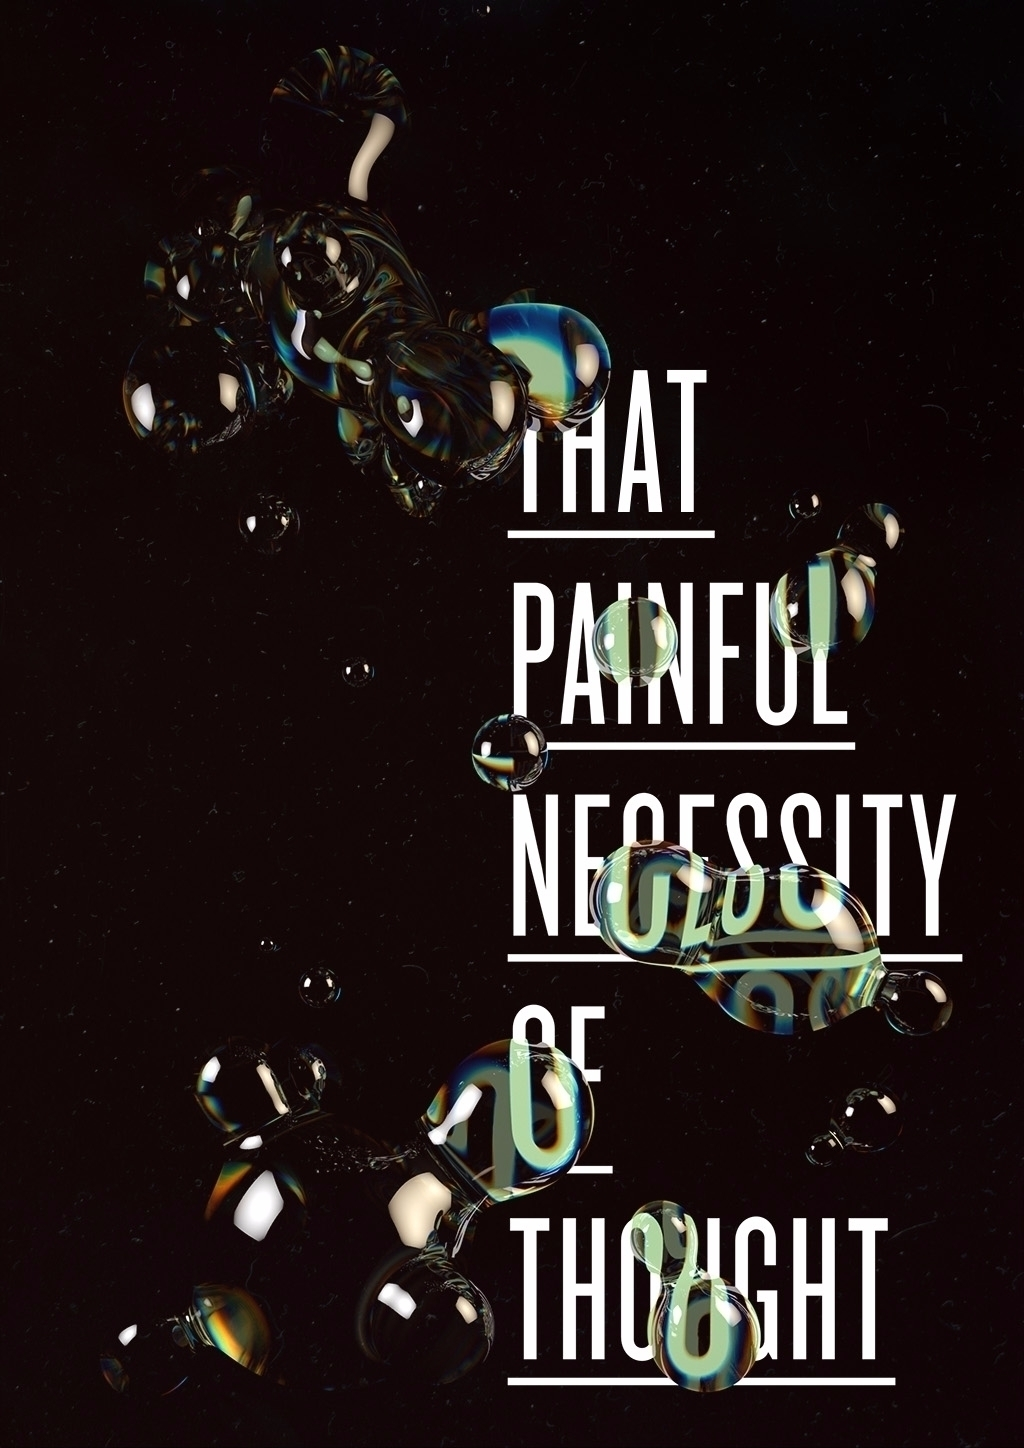 Painful Poster - poster, black, quote - molistudio | ello